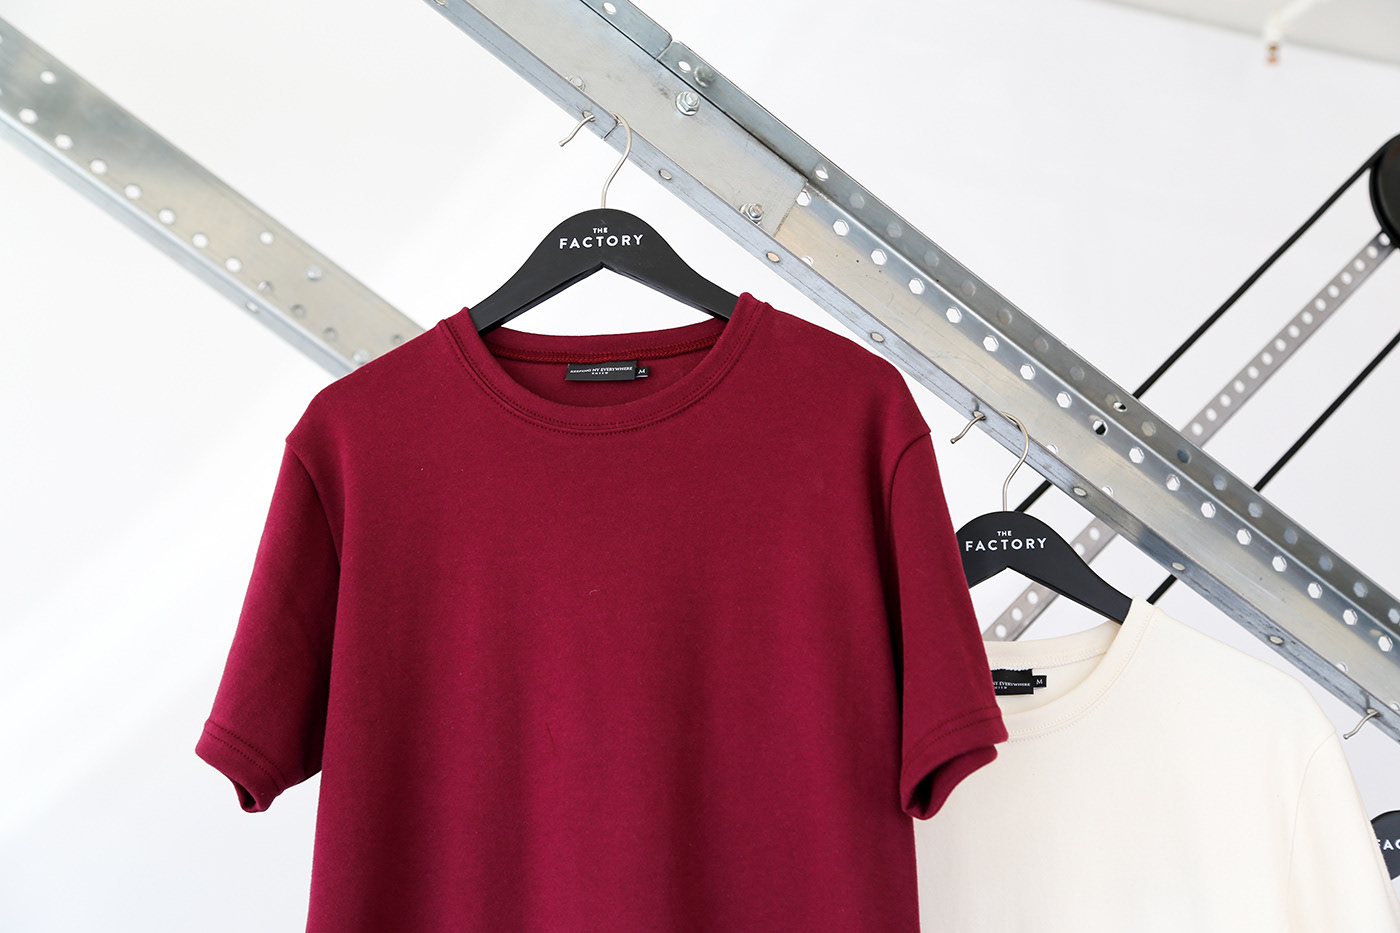 A Factory hanger holds a red T-shirt.